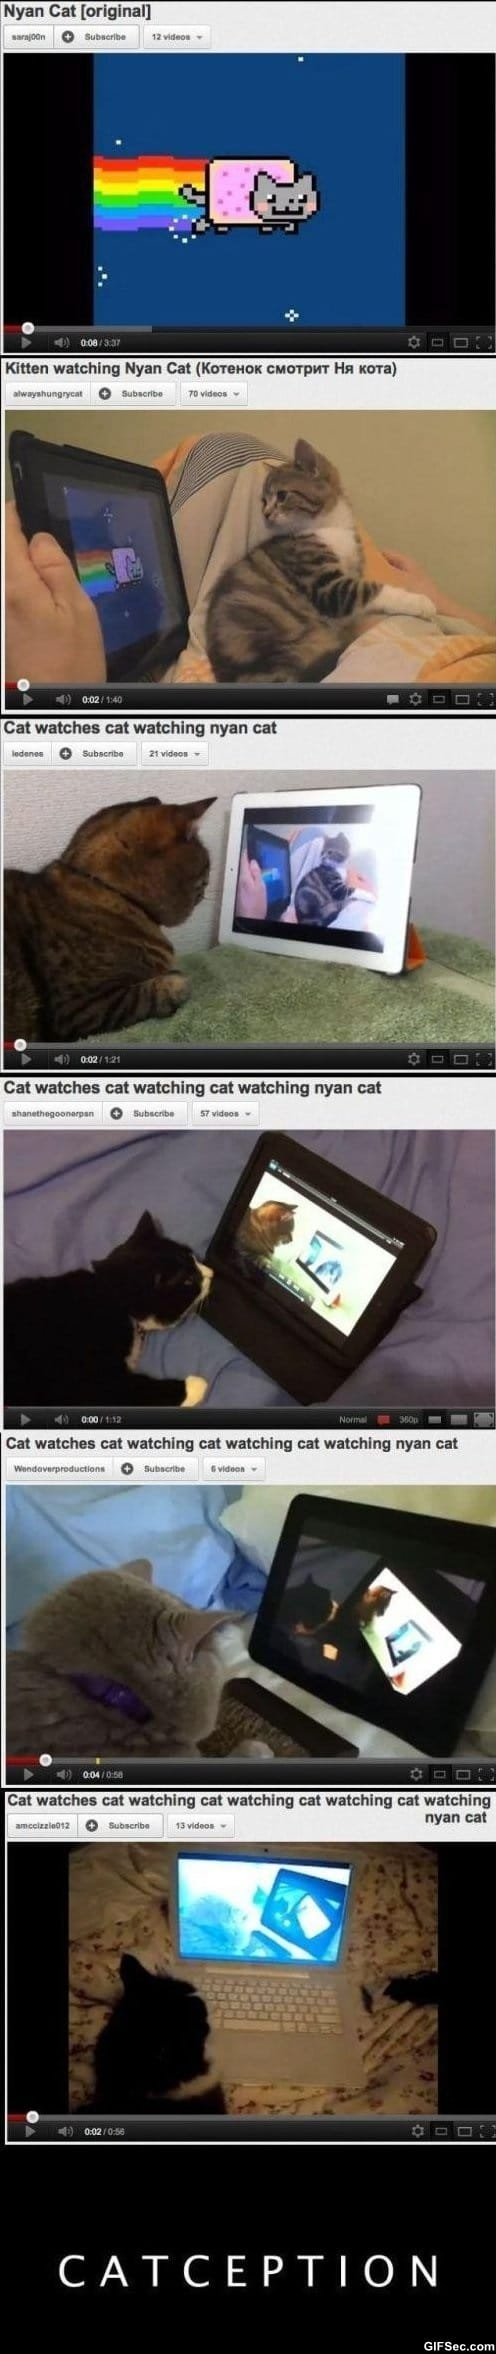 Funny - Catception